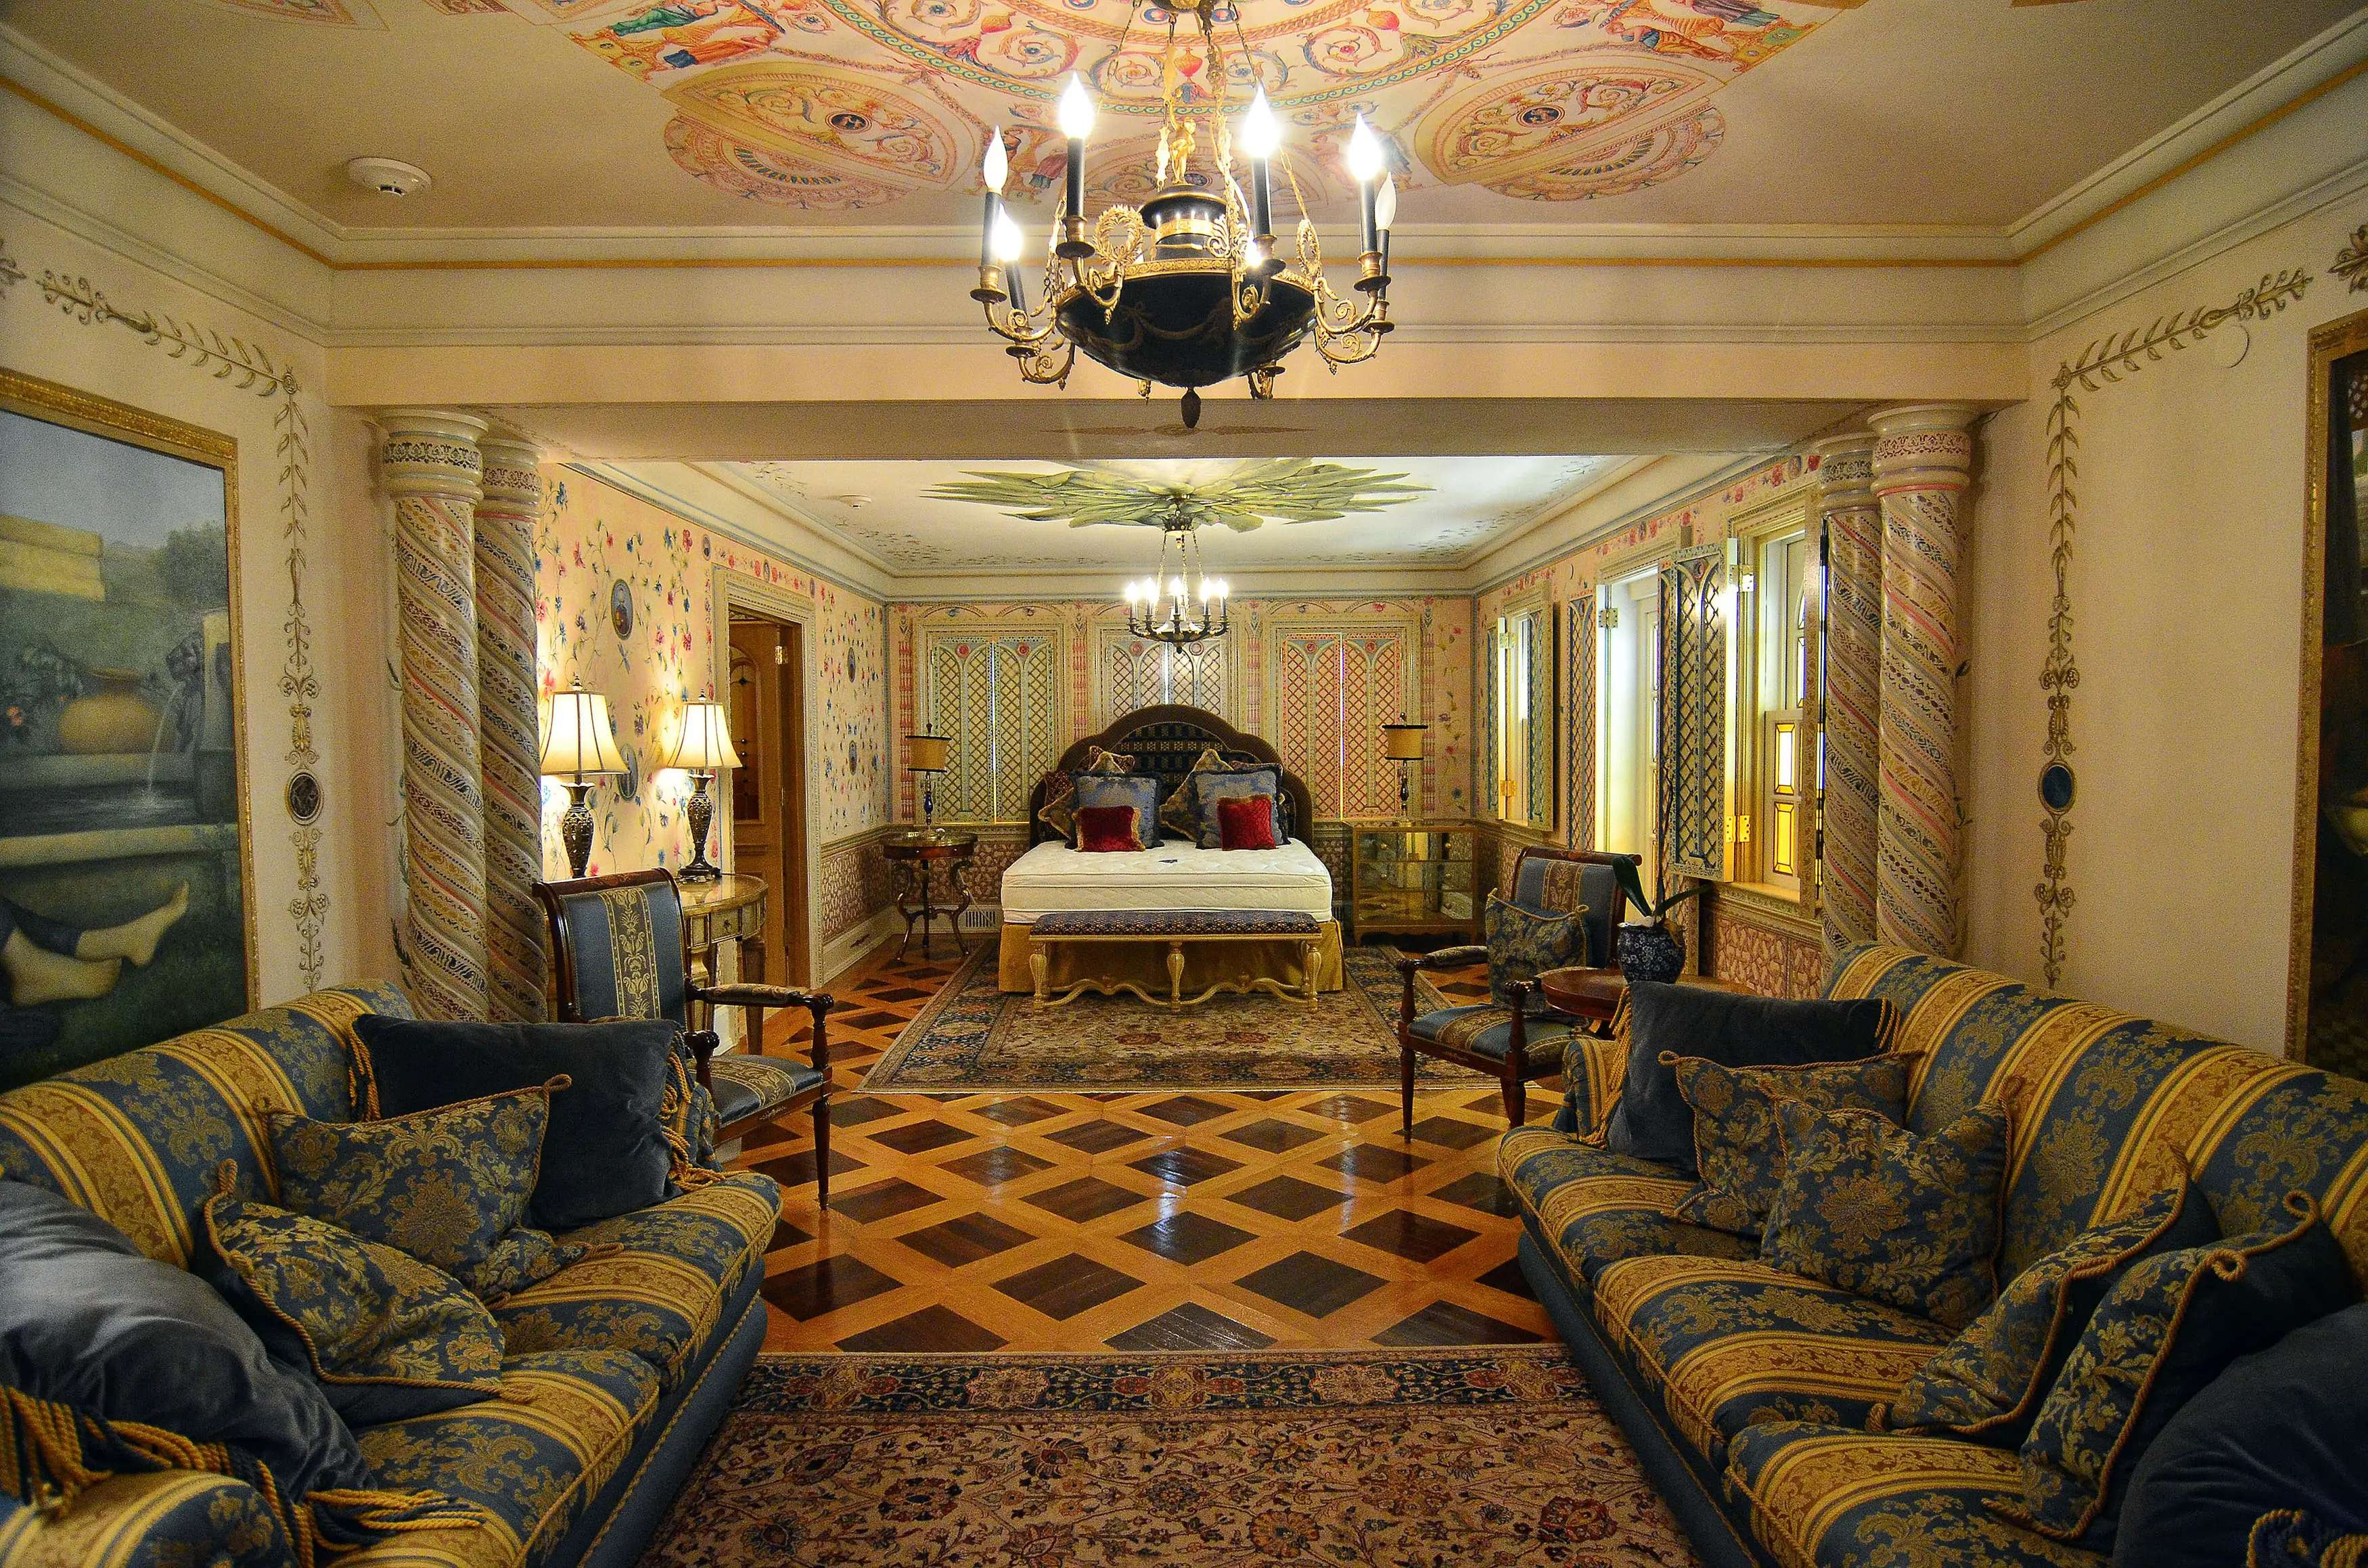 With columns, Moroccan couches, and a chandelier, this humongous suite has just about everything.